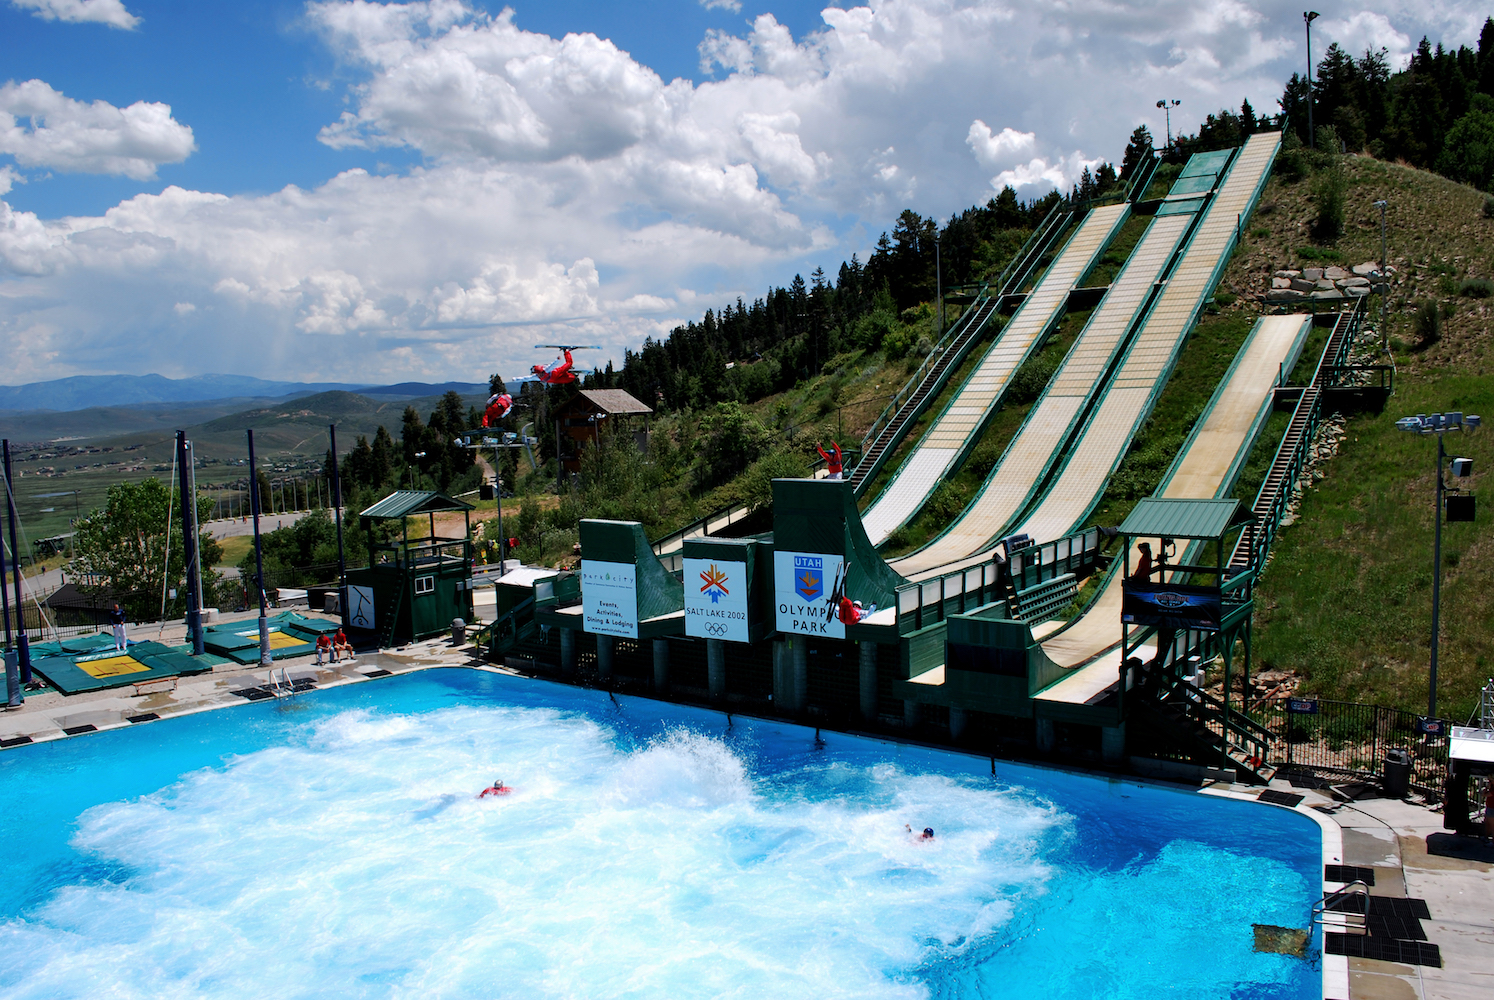 US Vacation Spots With Olympic Spirit